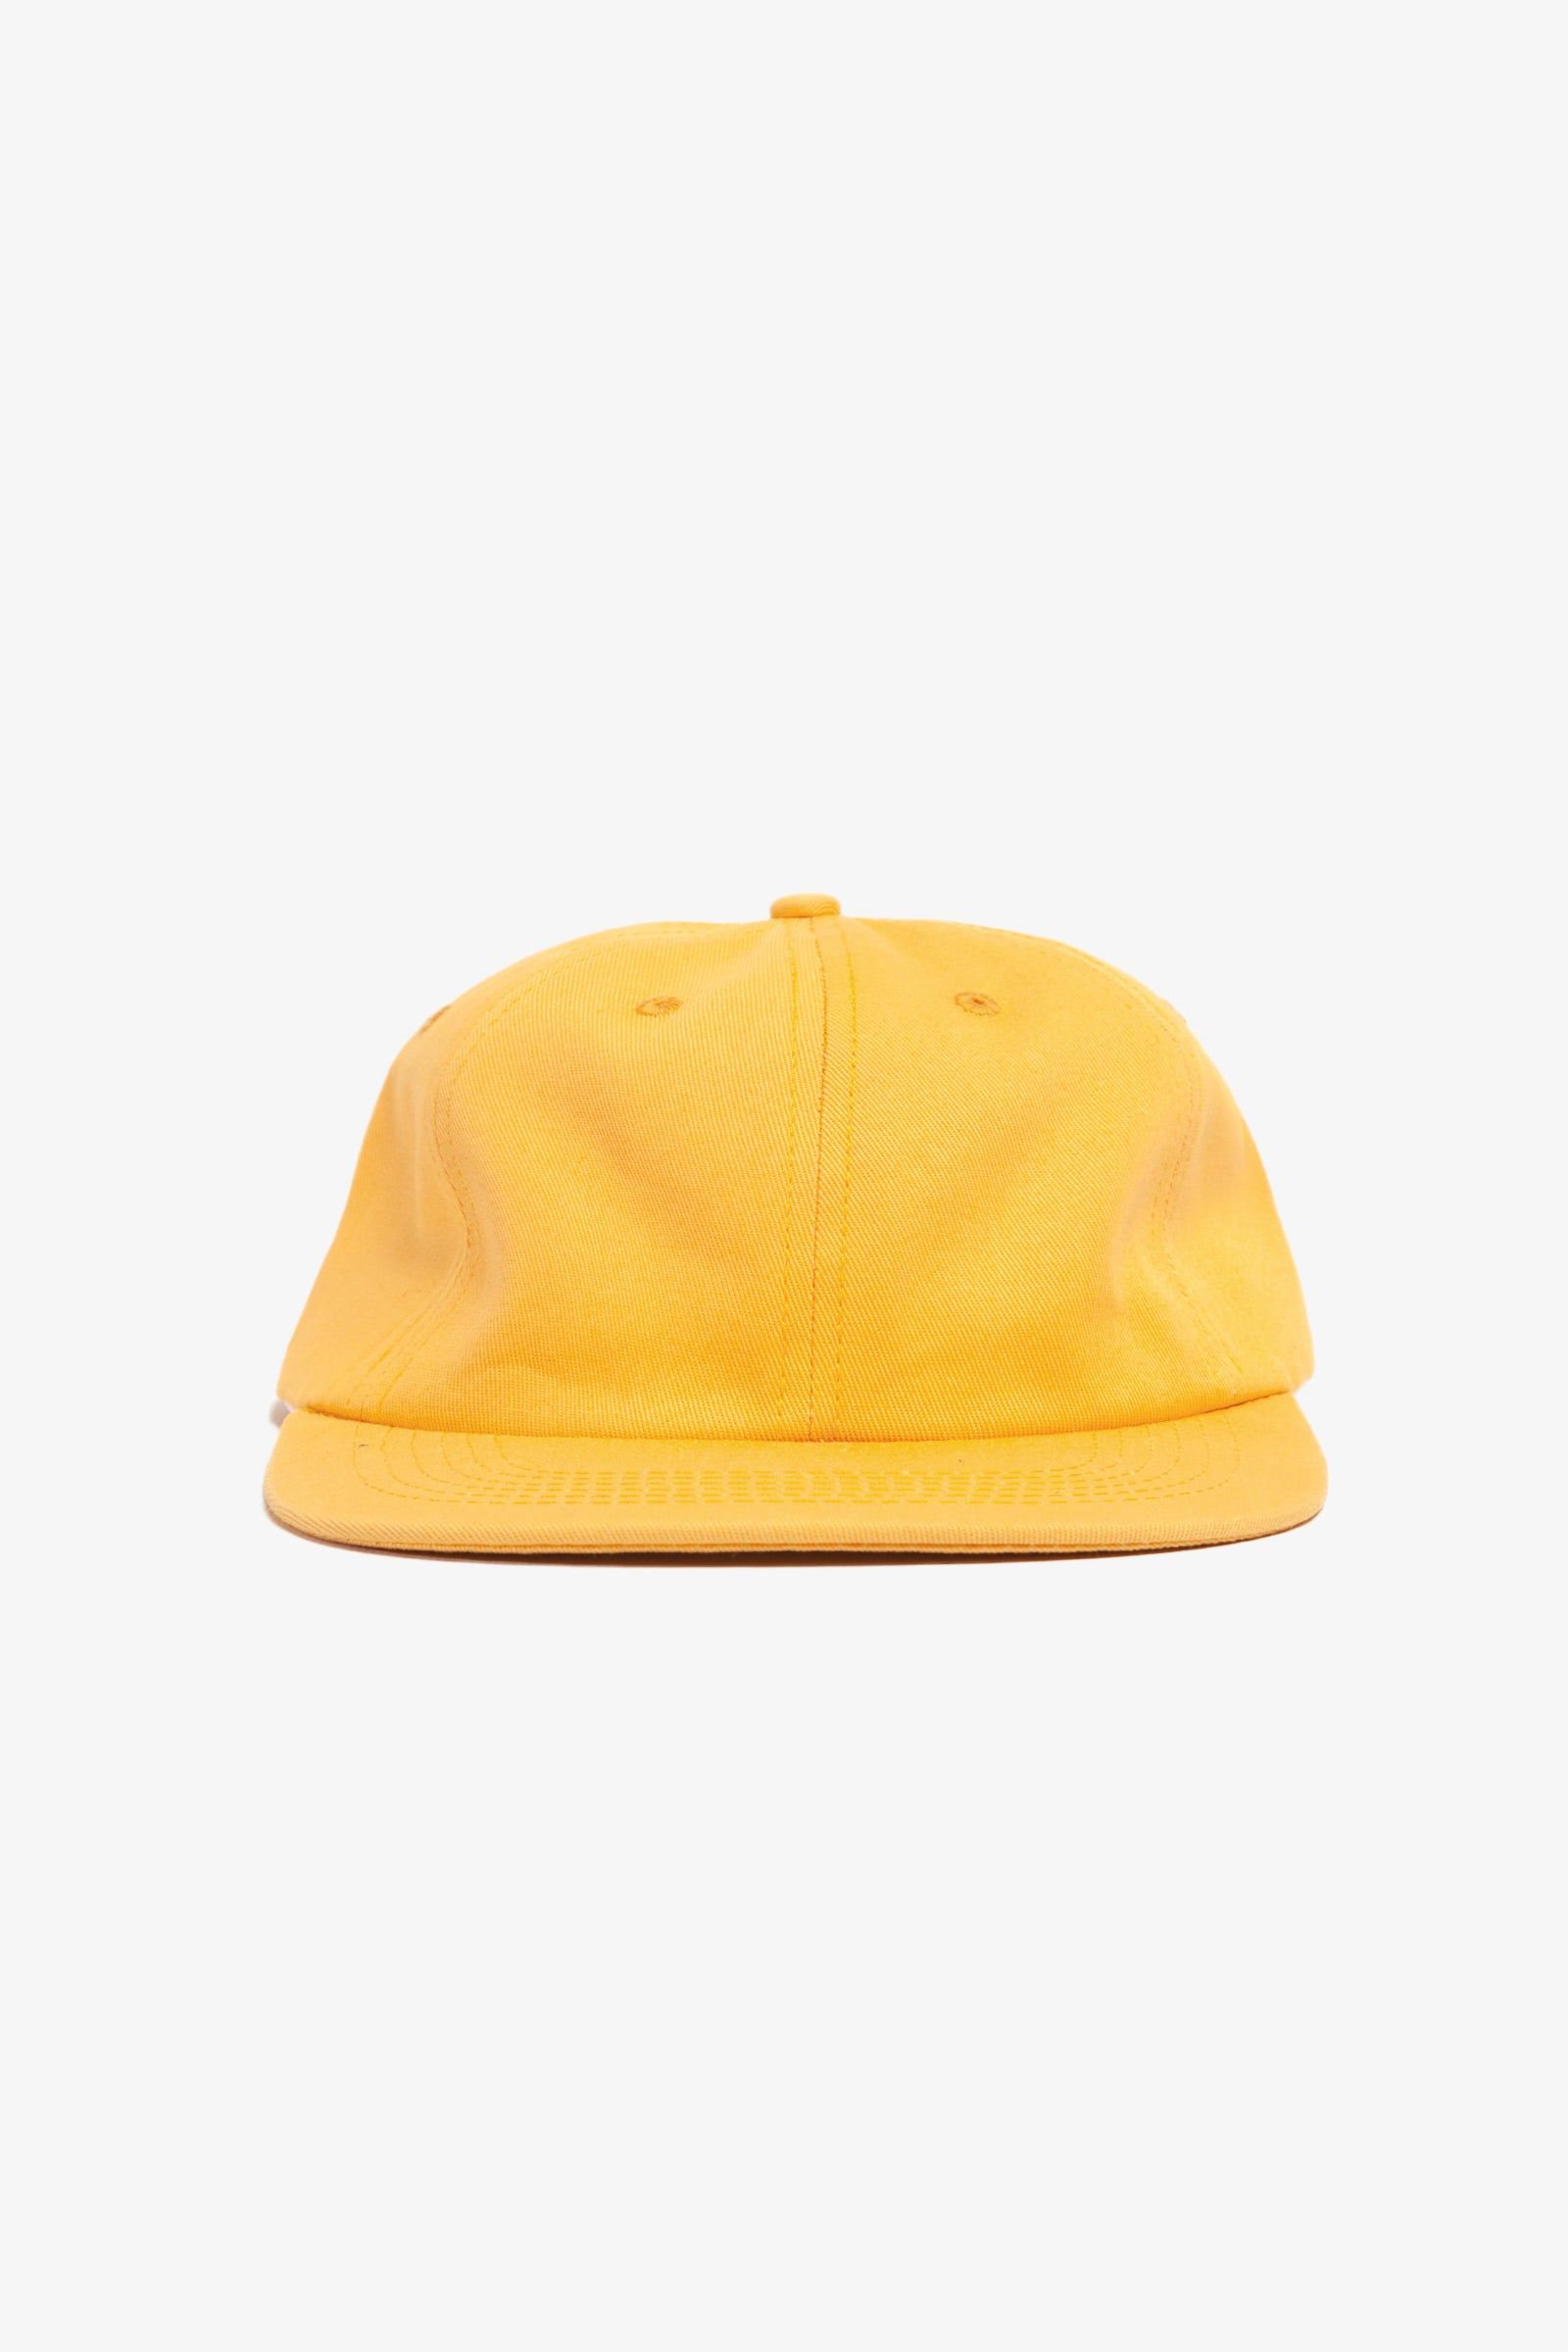 Power House - Perfect 6-Panel Cap - Sunflower